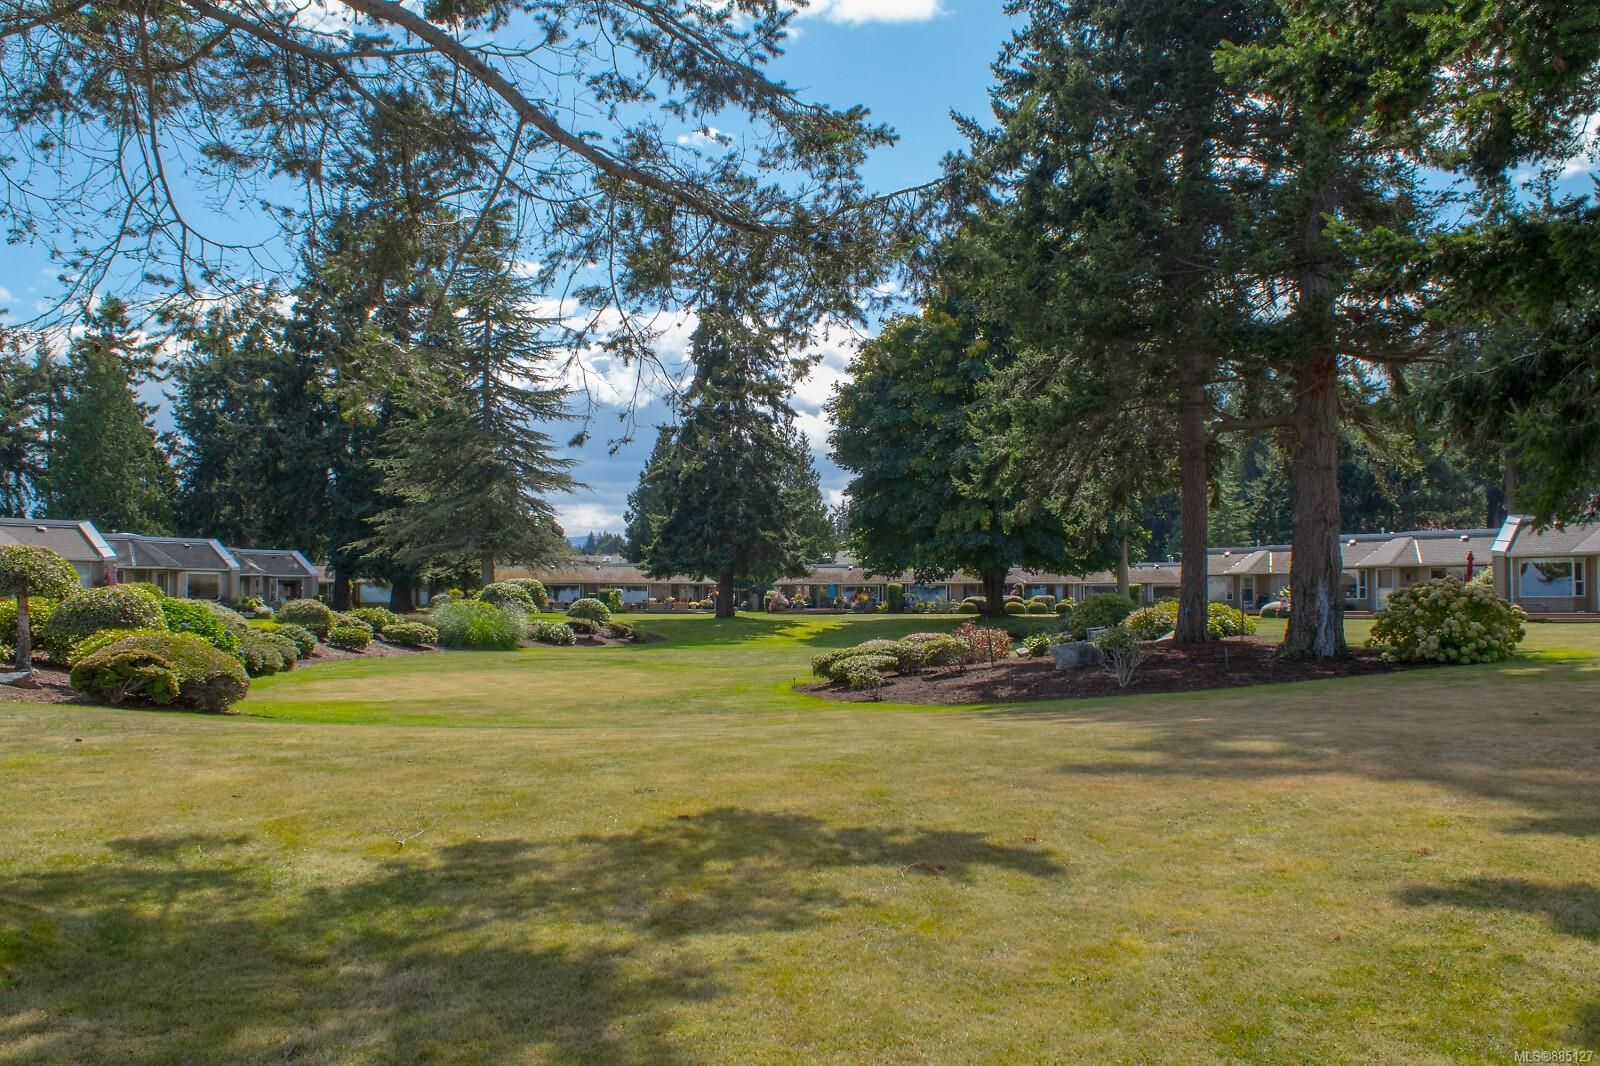 Photo 54: Photos: 26 529 Johnstone Rd in : PQ French Creek Row/Townhouse for sale (Parksville/Qualicum)  : MLS®# 885127